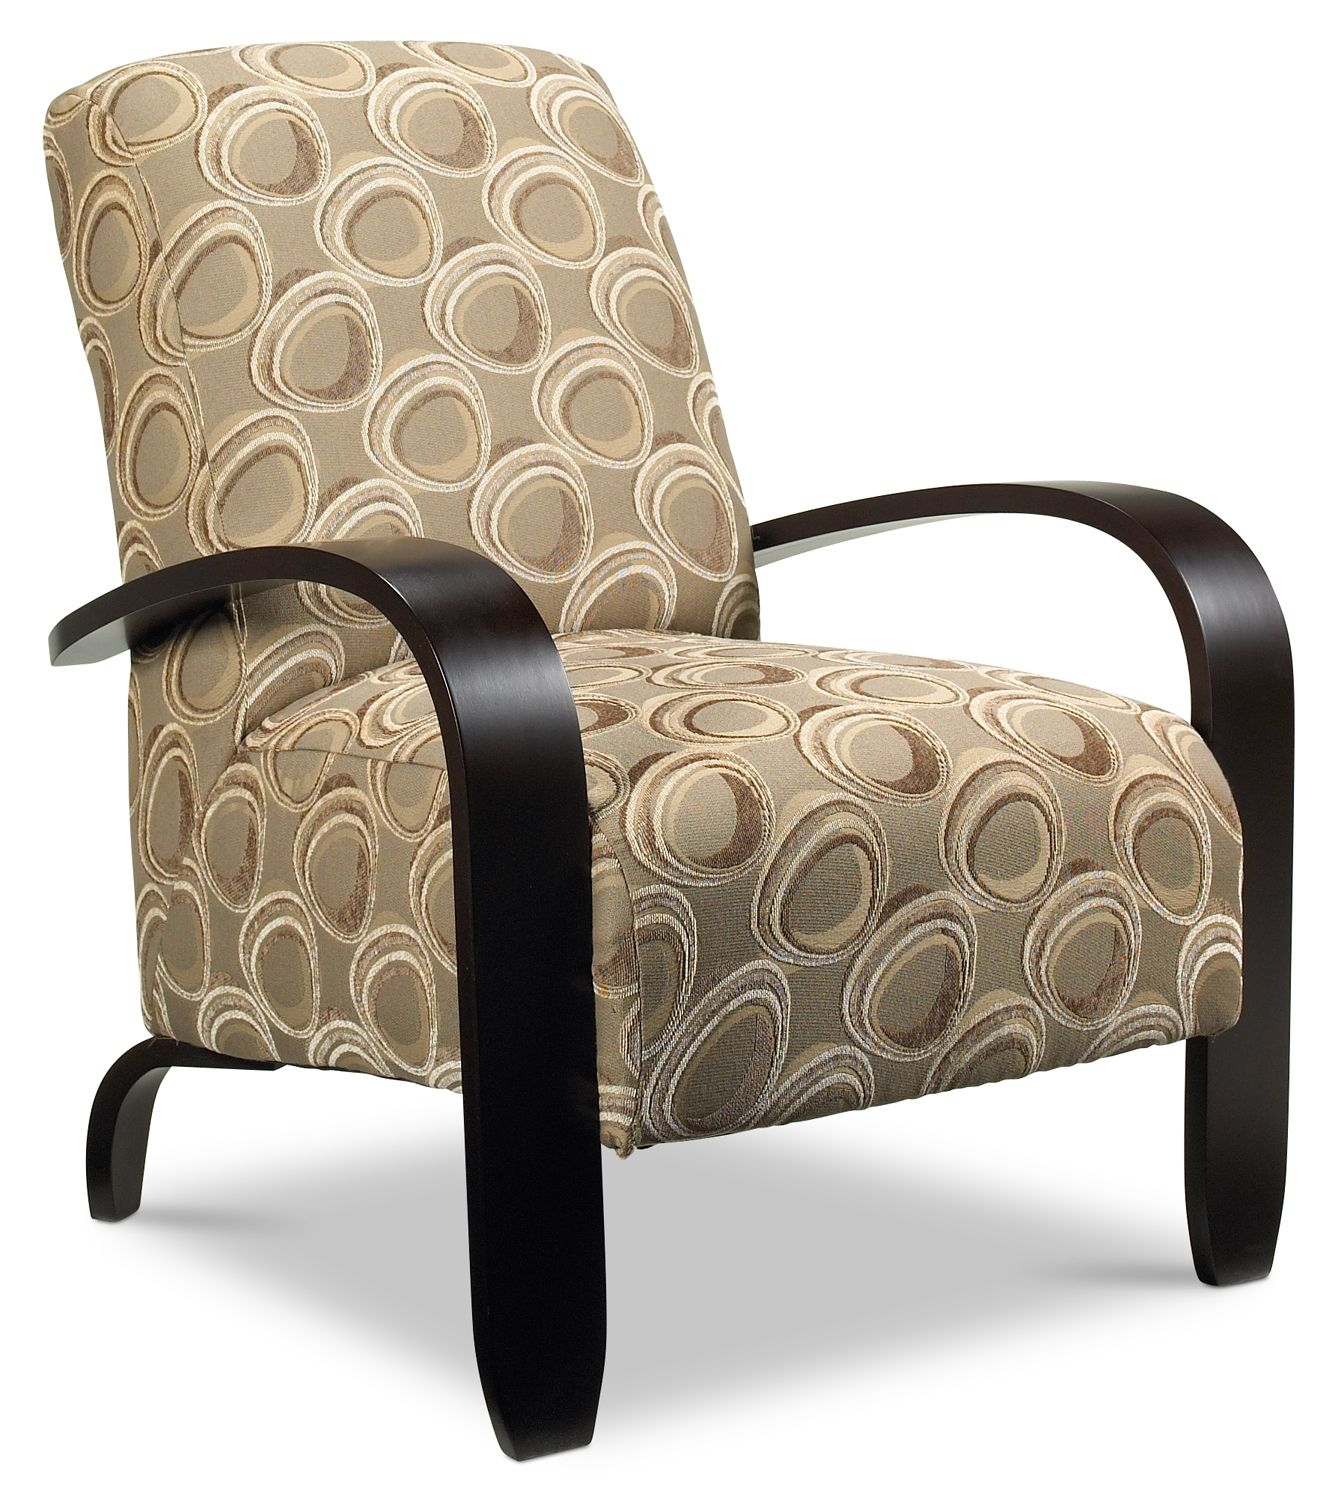 Maravu Upholstery Accent Chair Leon S With Images Upholstery